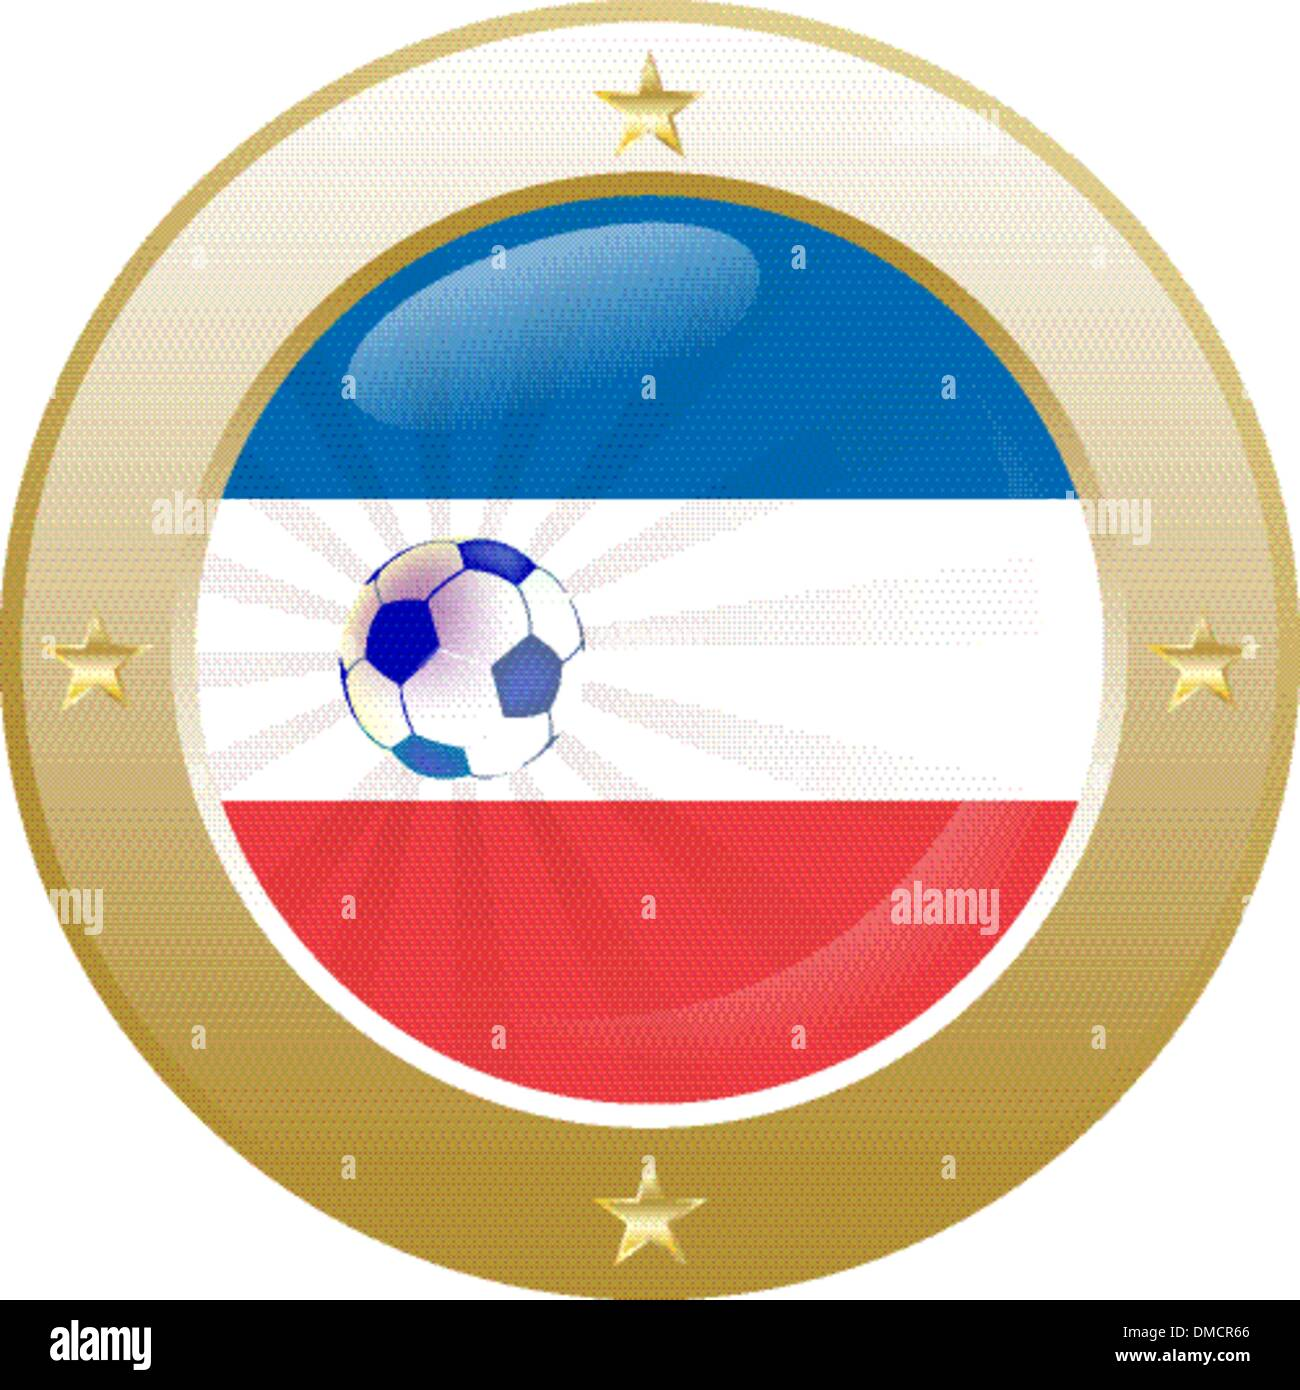 national flag of the Netherlands (Holland) in circular shape wit - Stock Vector